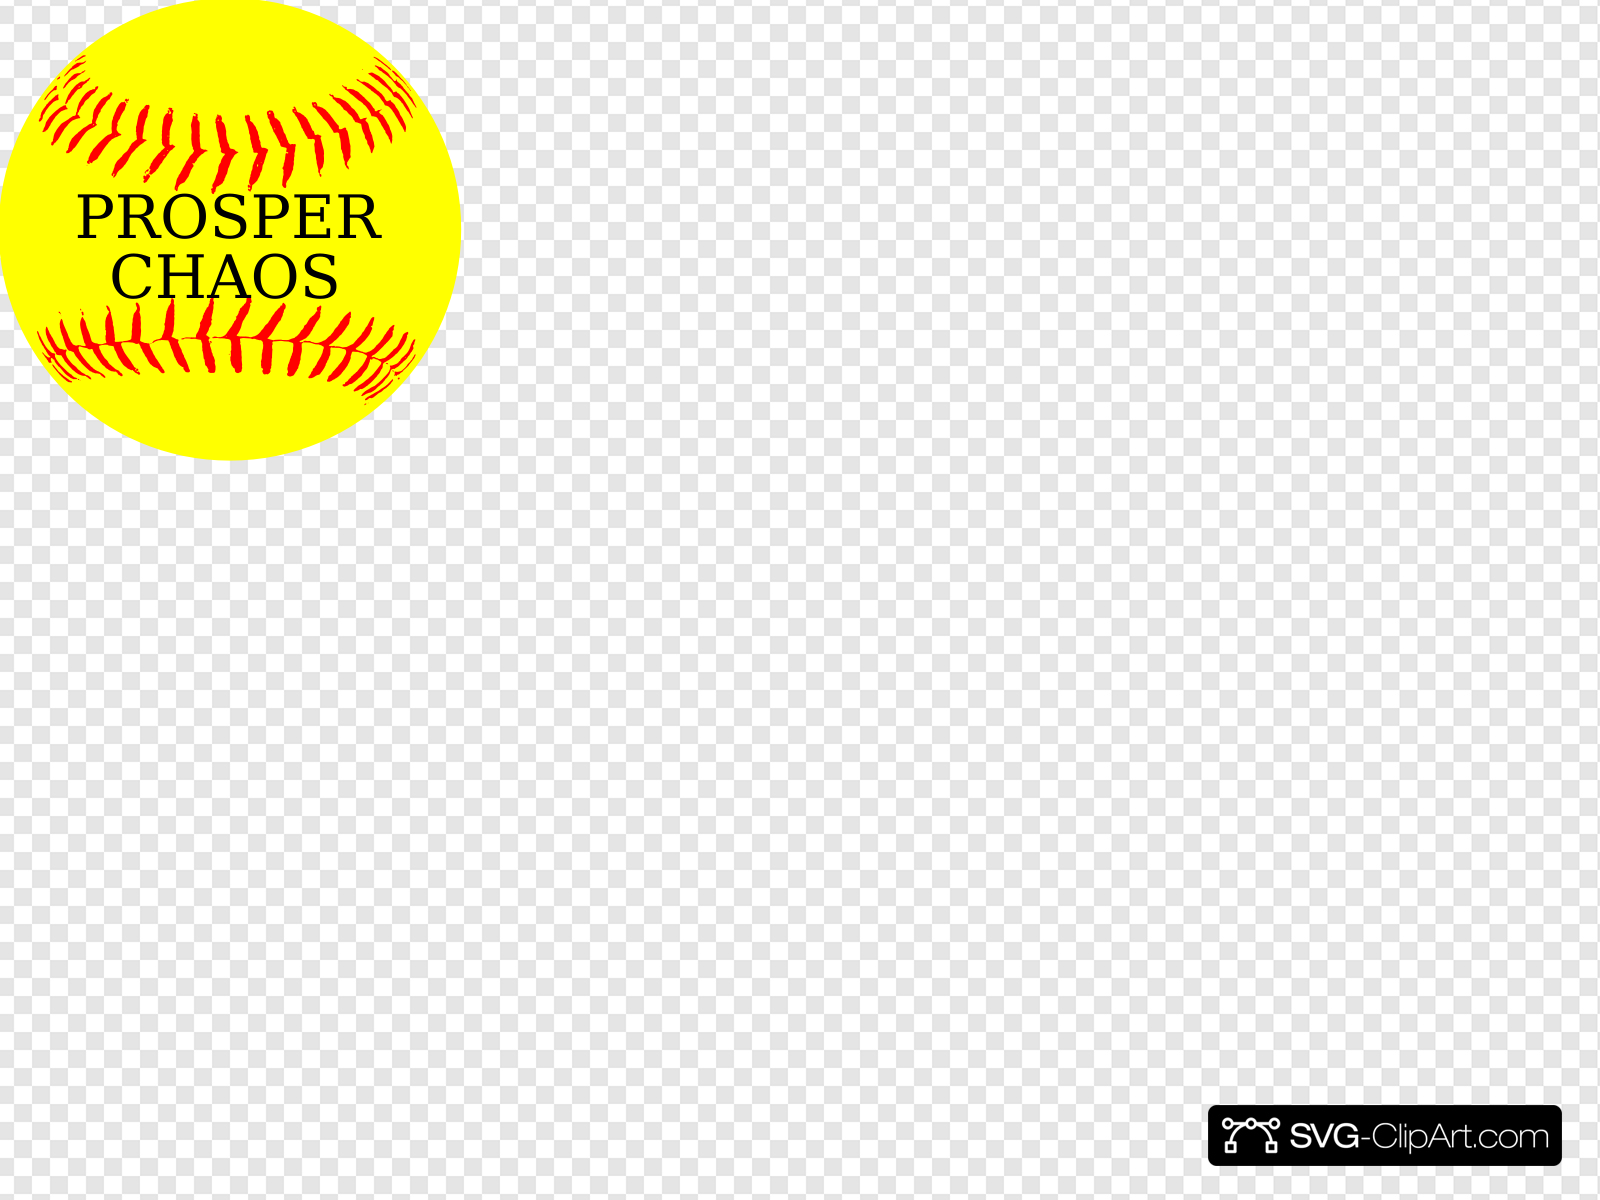 Softball Yellow Prosper Clip art, Icon and SVG.